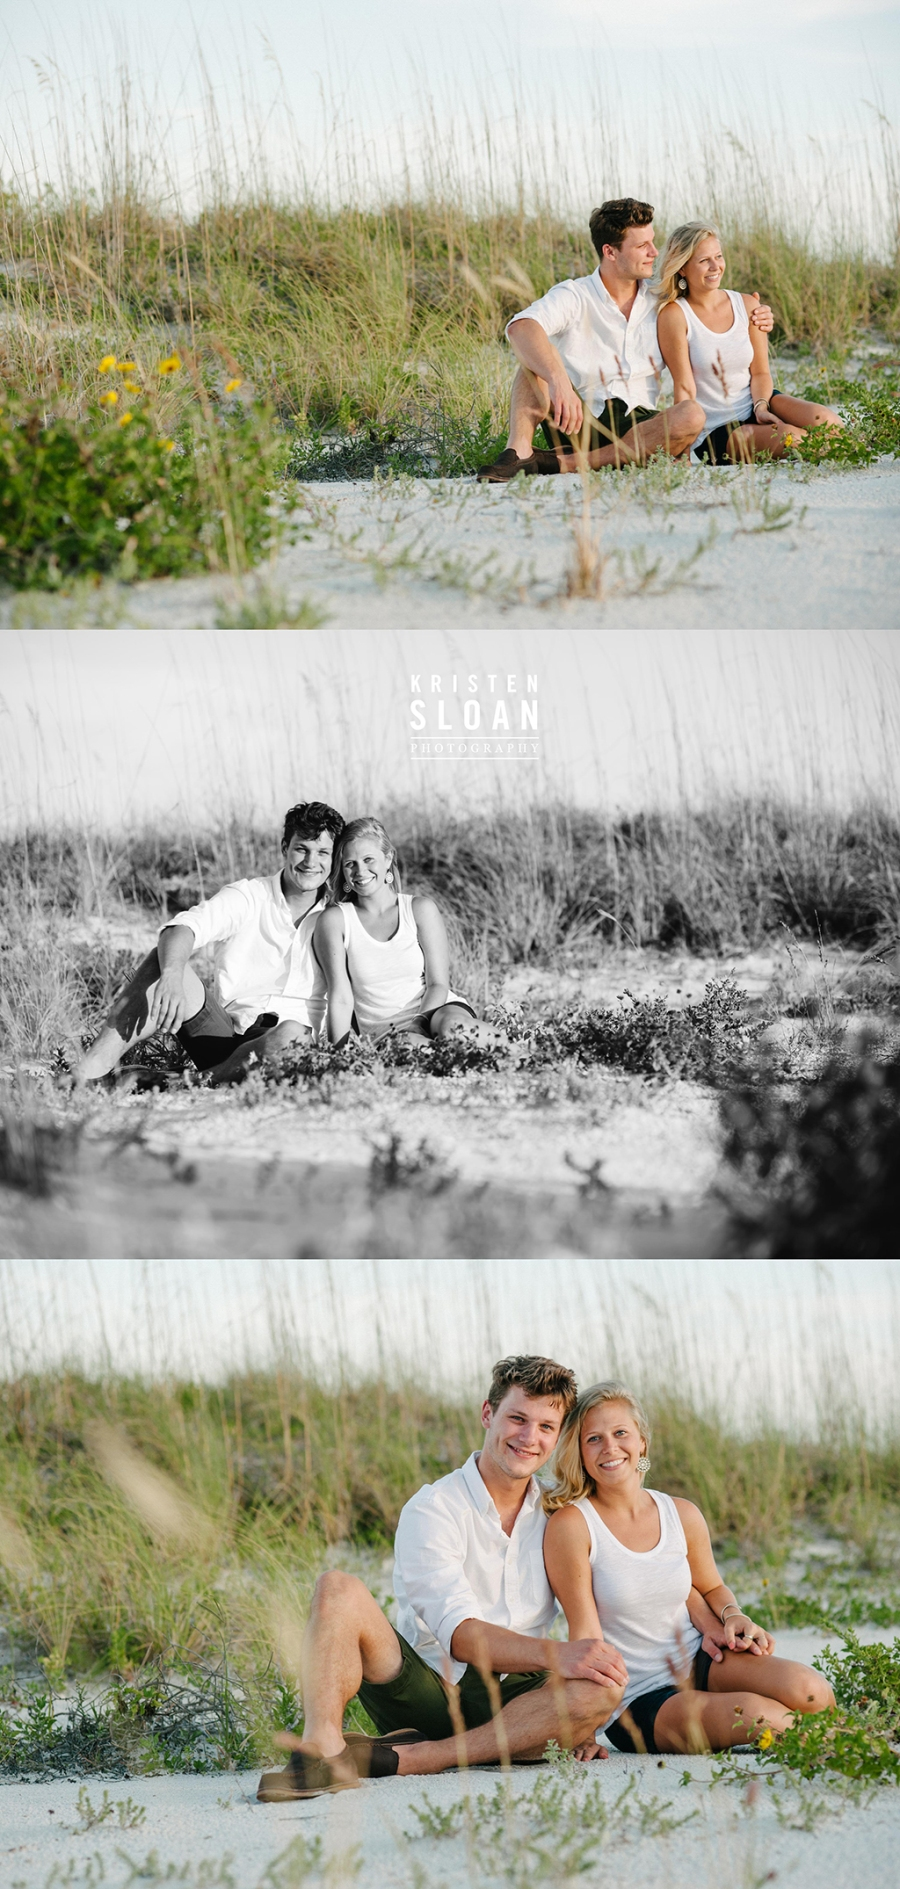 Clear Blue Skies in Treasure Island Beach Couples Portrait Session